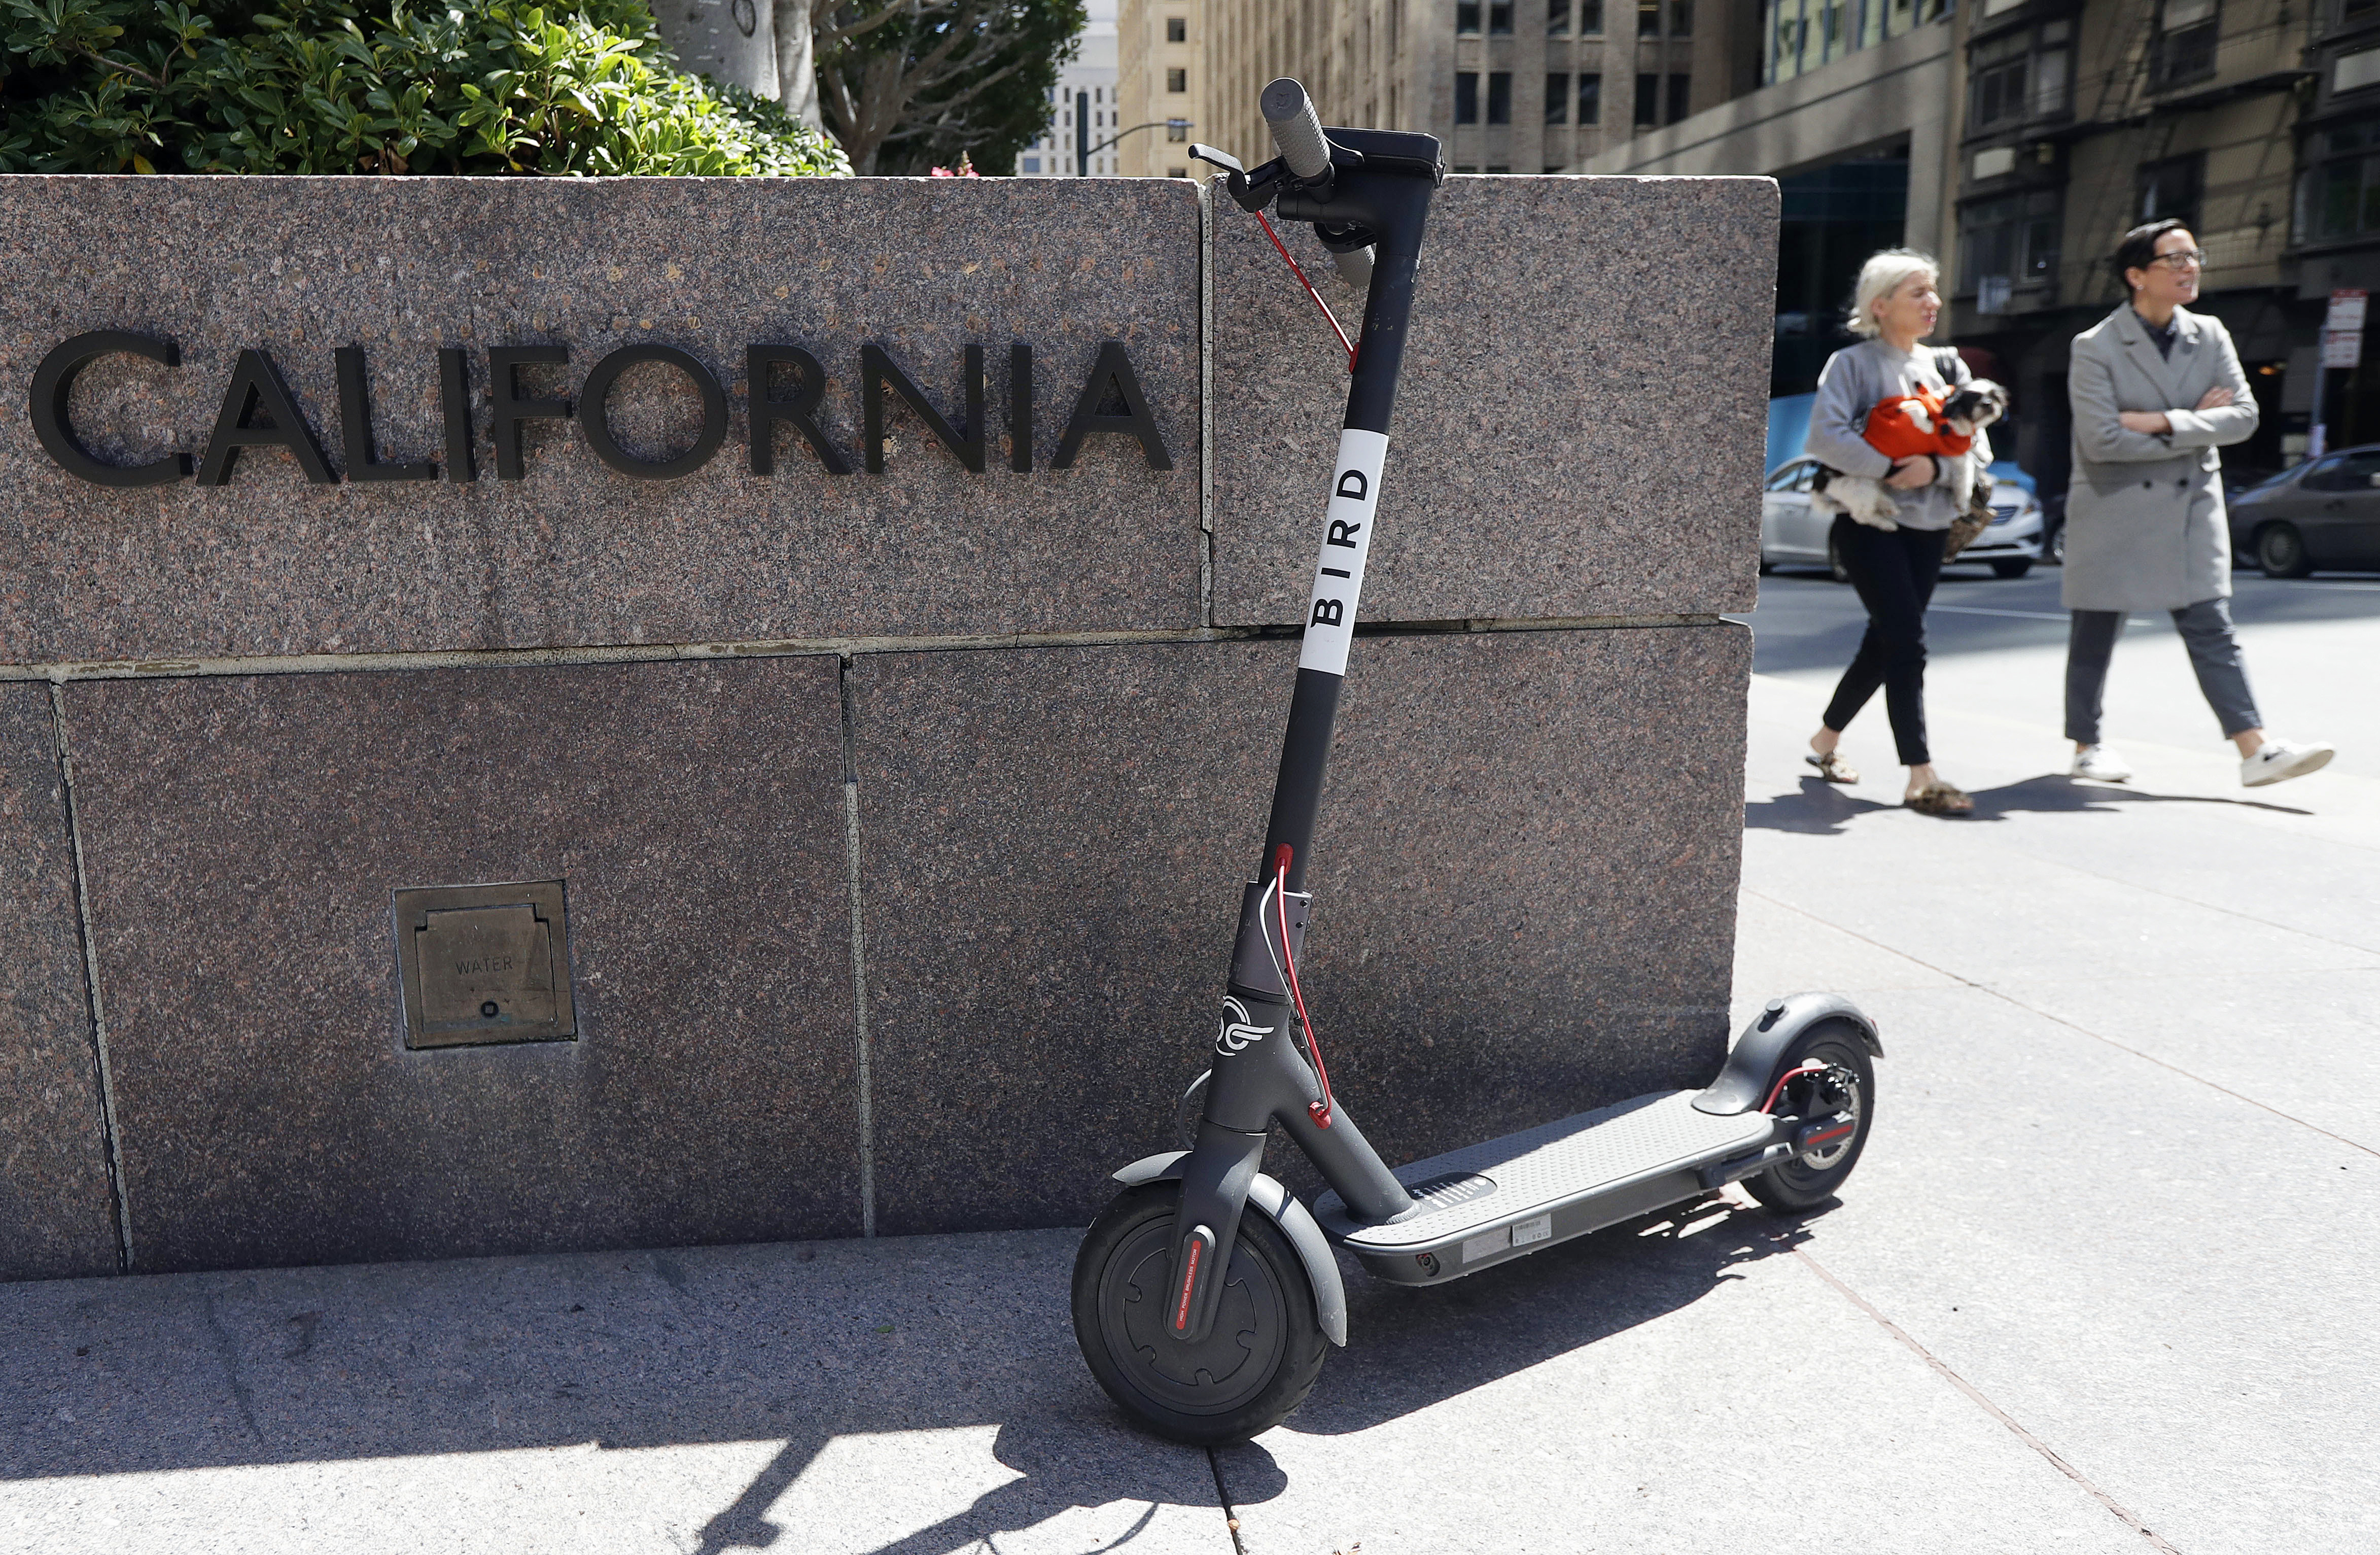 Fatal e-scooter accident emerges just as California legalizes riding